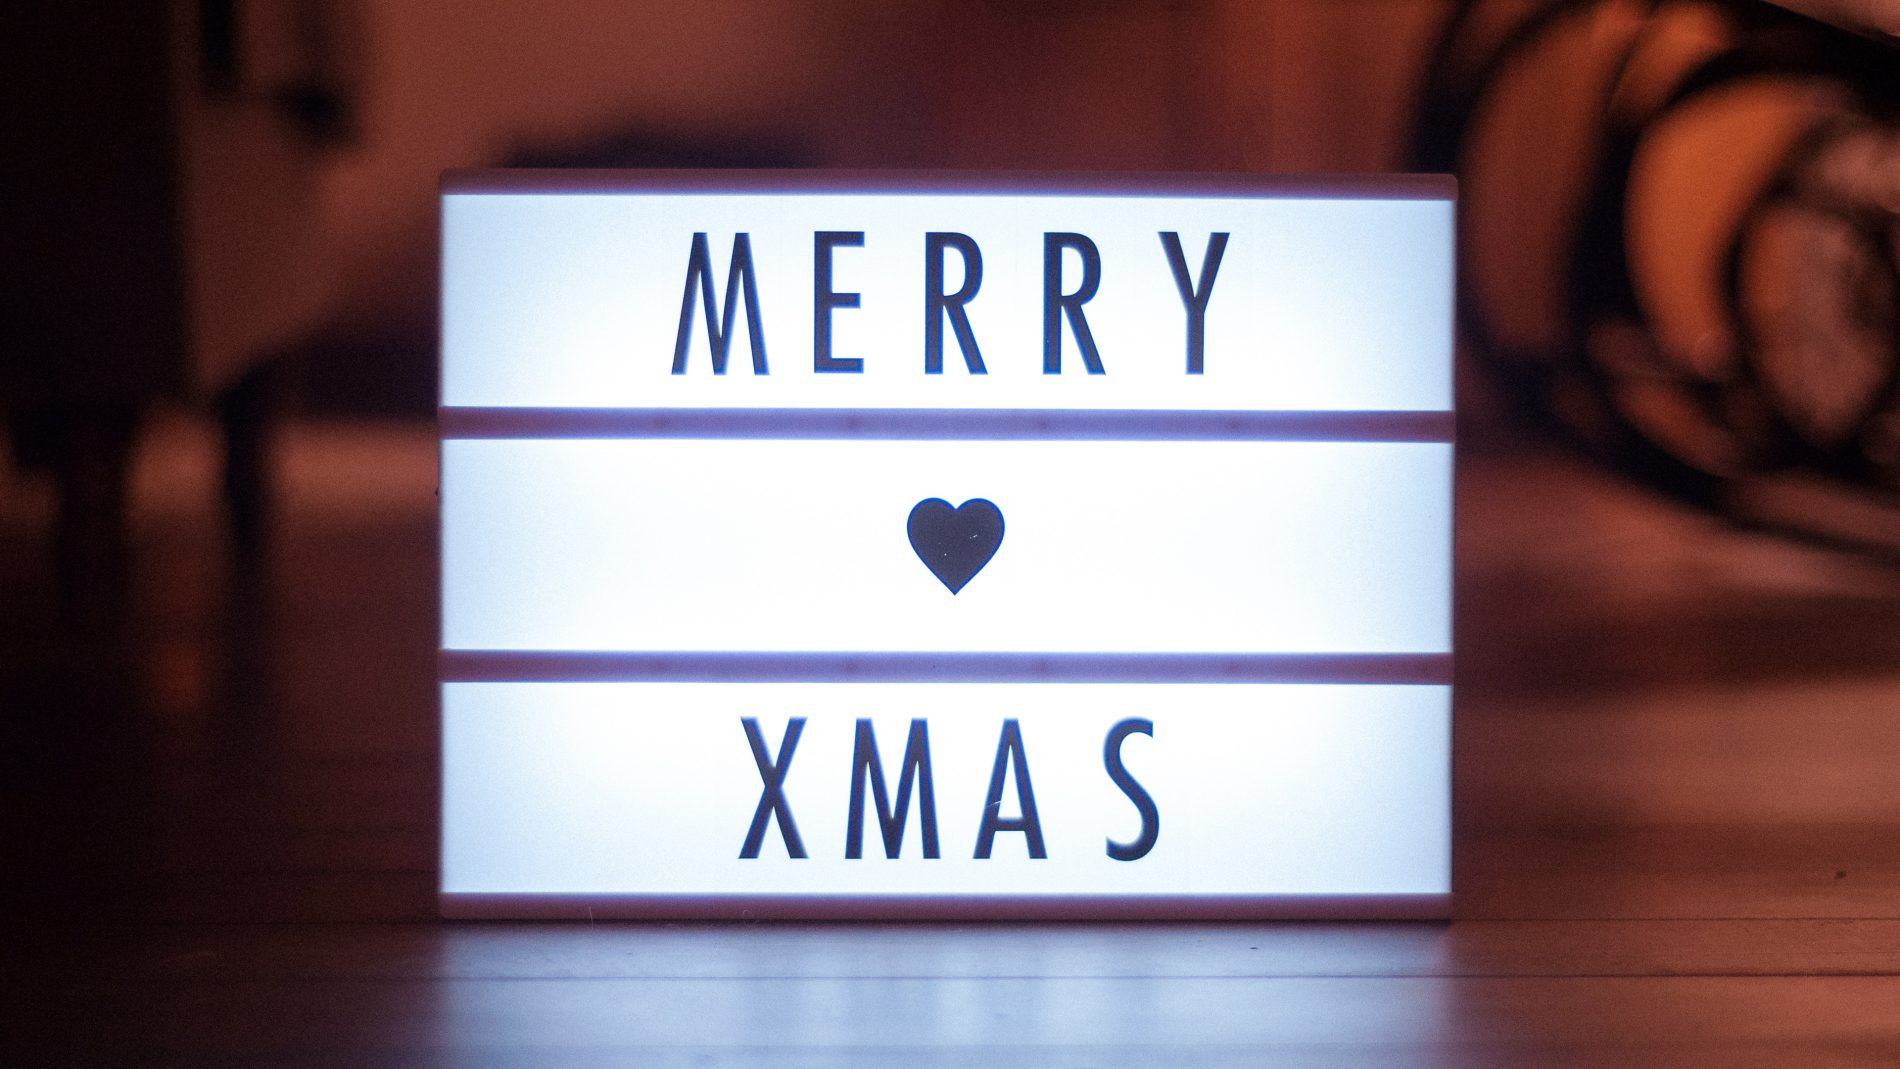 Merry Xmas light box